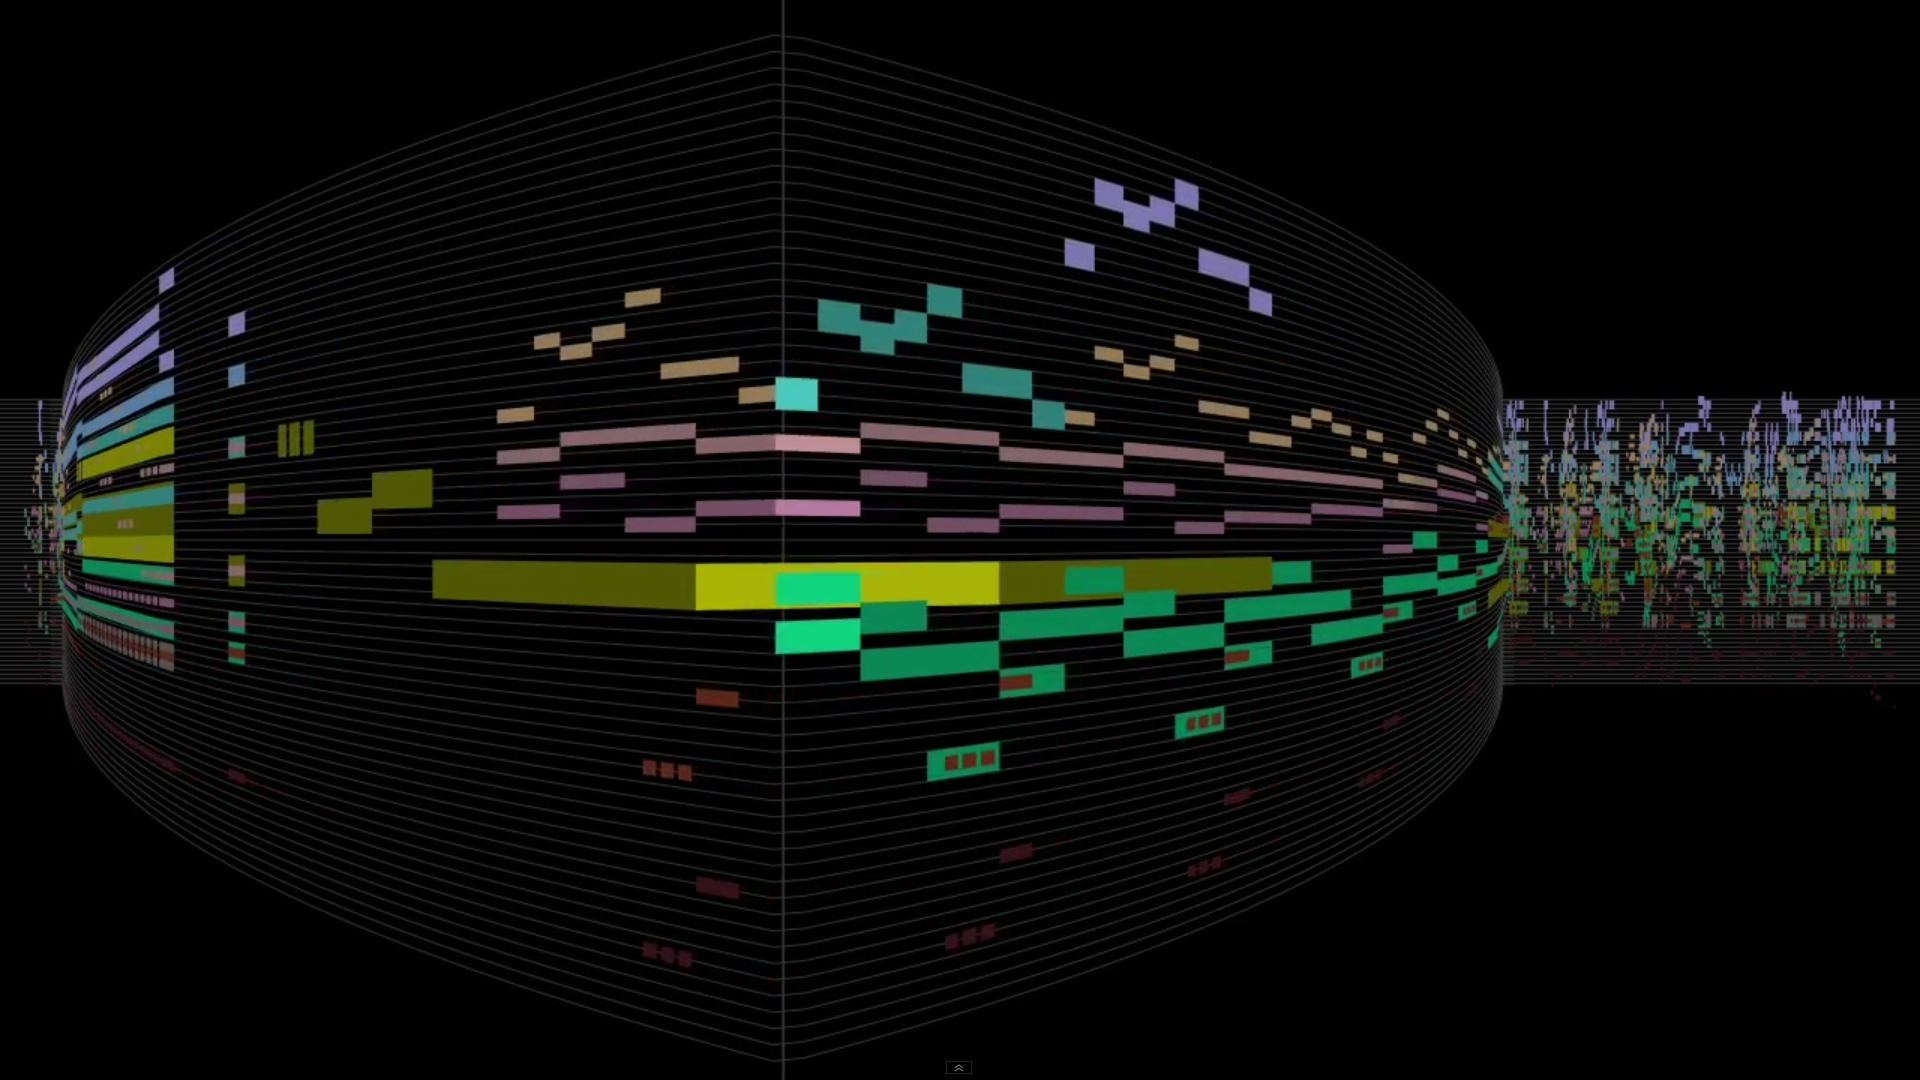 5Th Symphony beethoven's 5th symphony visualized  - churchmag